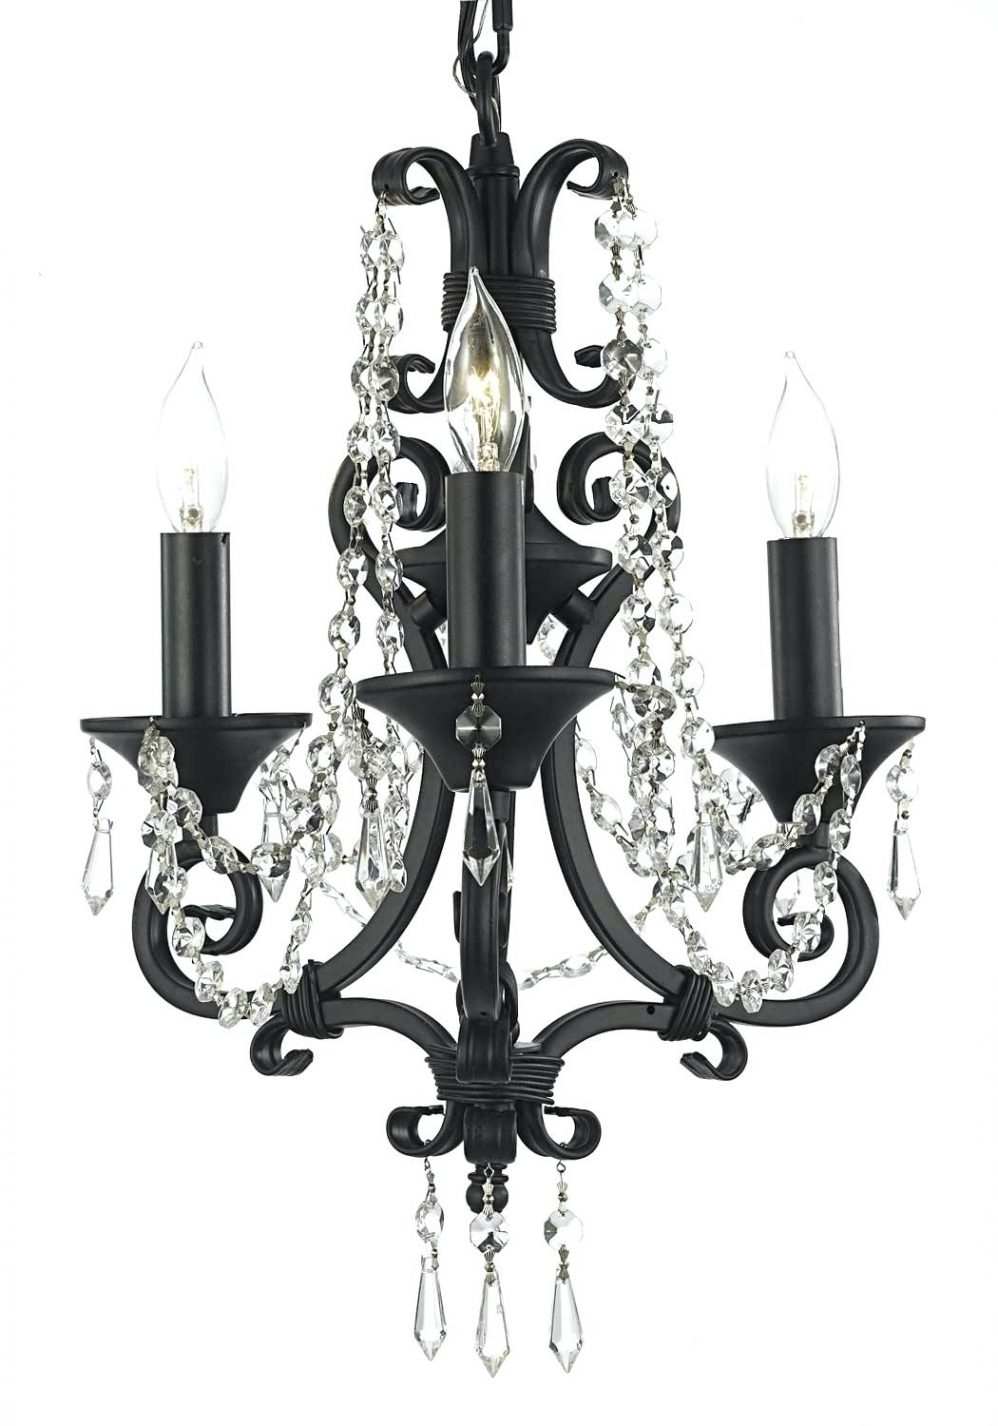 Flush Mount Crystal Chandelier Beautiful French Country Style Inside Grey Crystal Chandelier (Image 8 of 15)